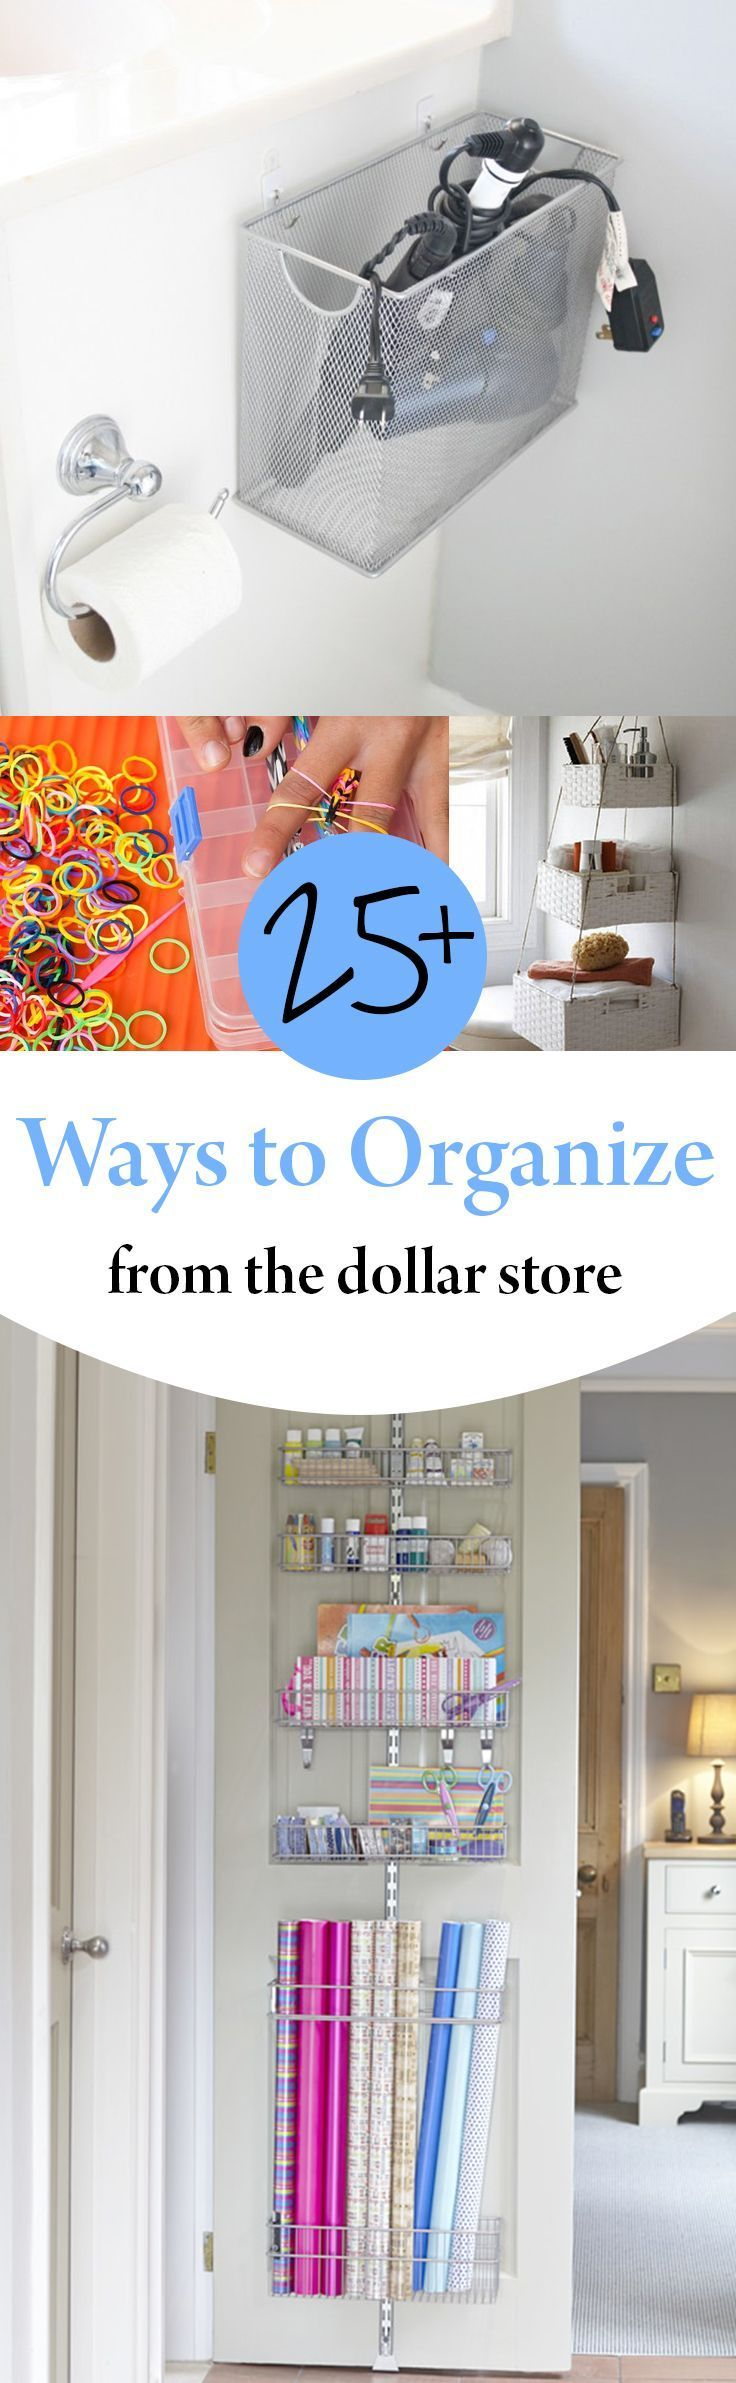 Organization, Home Organization, Home Organization Hacks, Organized Home, #DIY Home, Popular Pin, Home #Decor, Dollar Store Organization